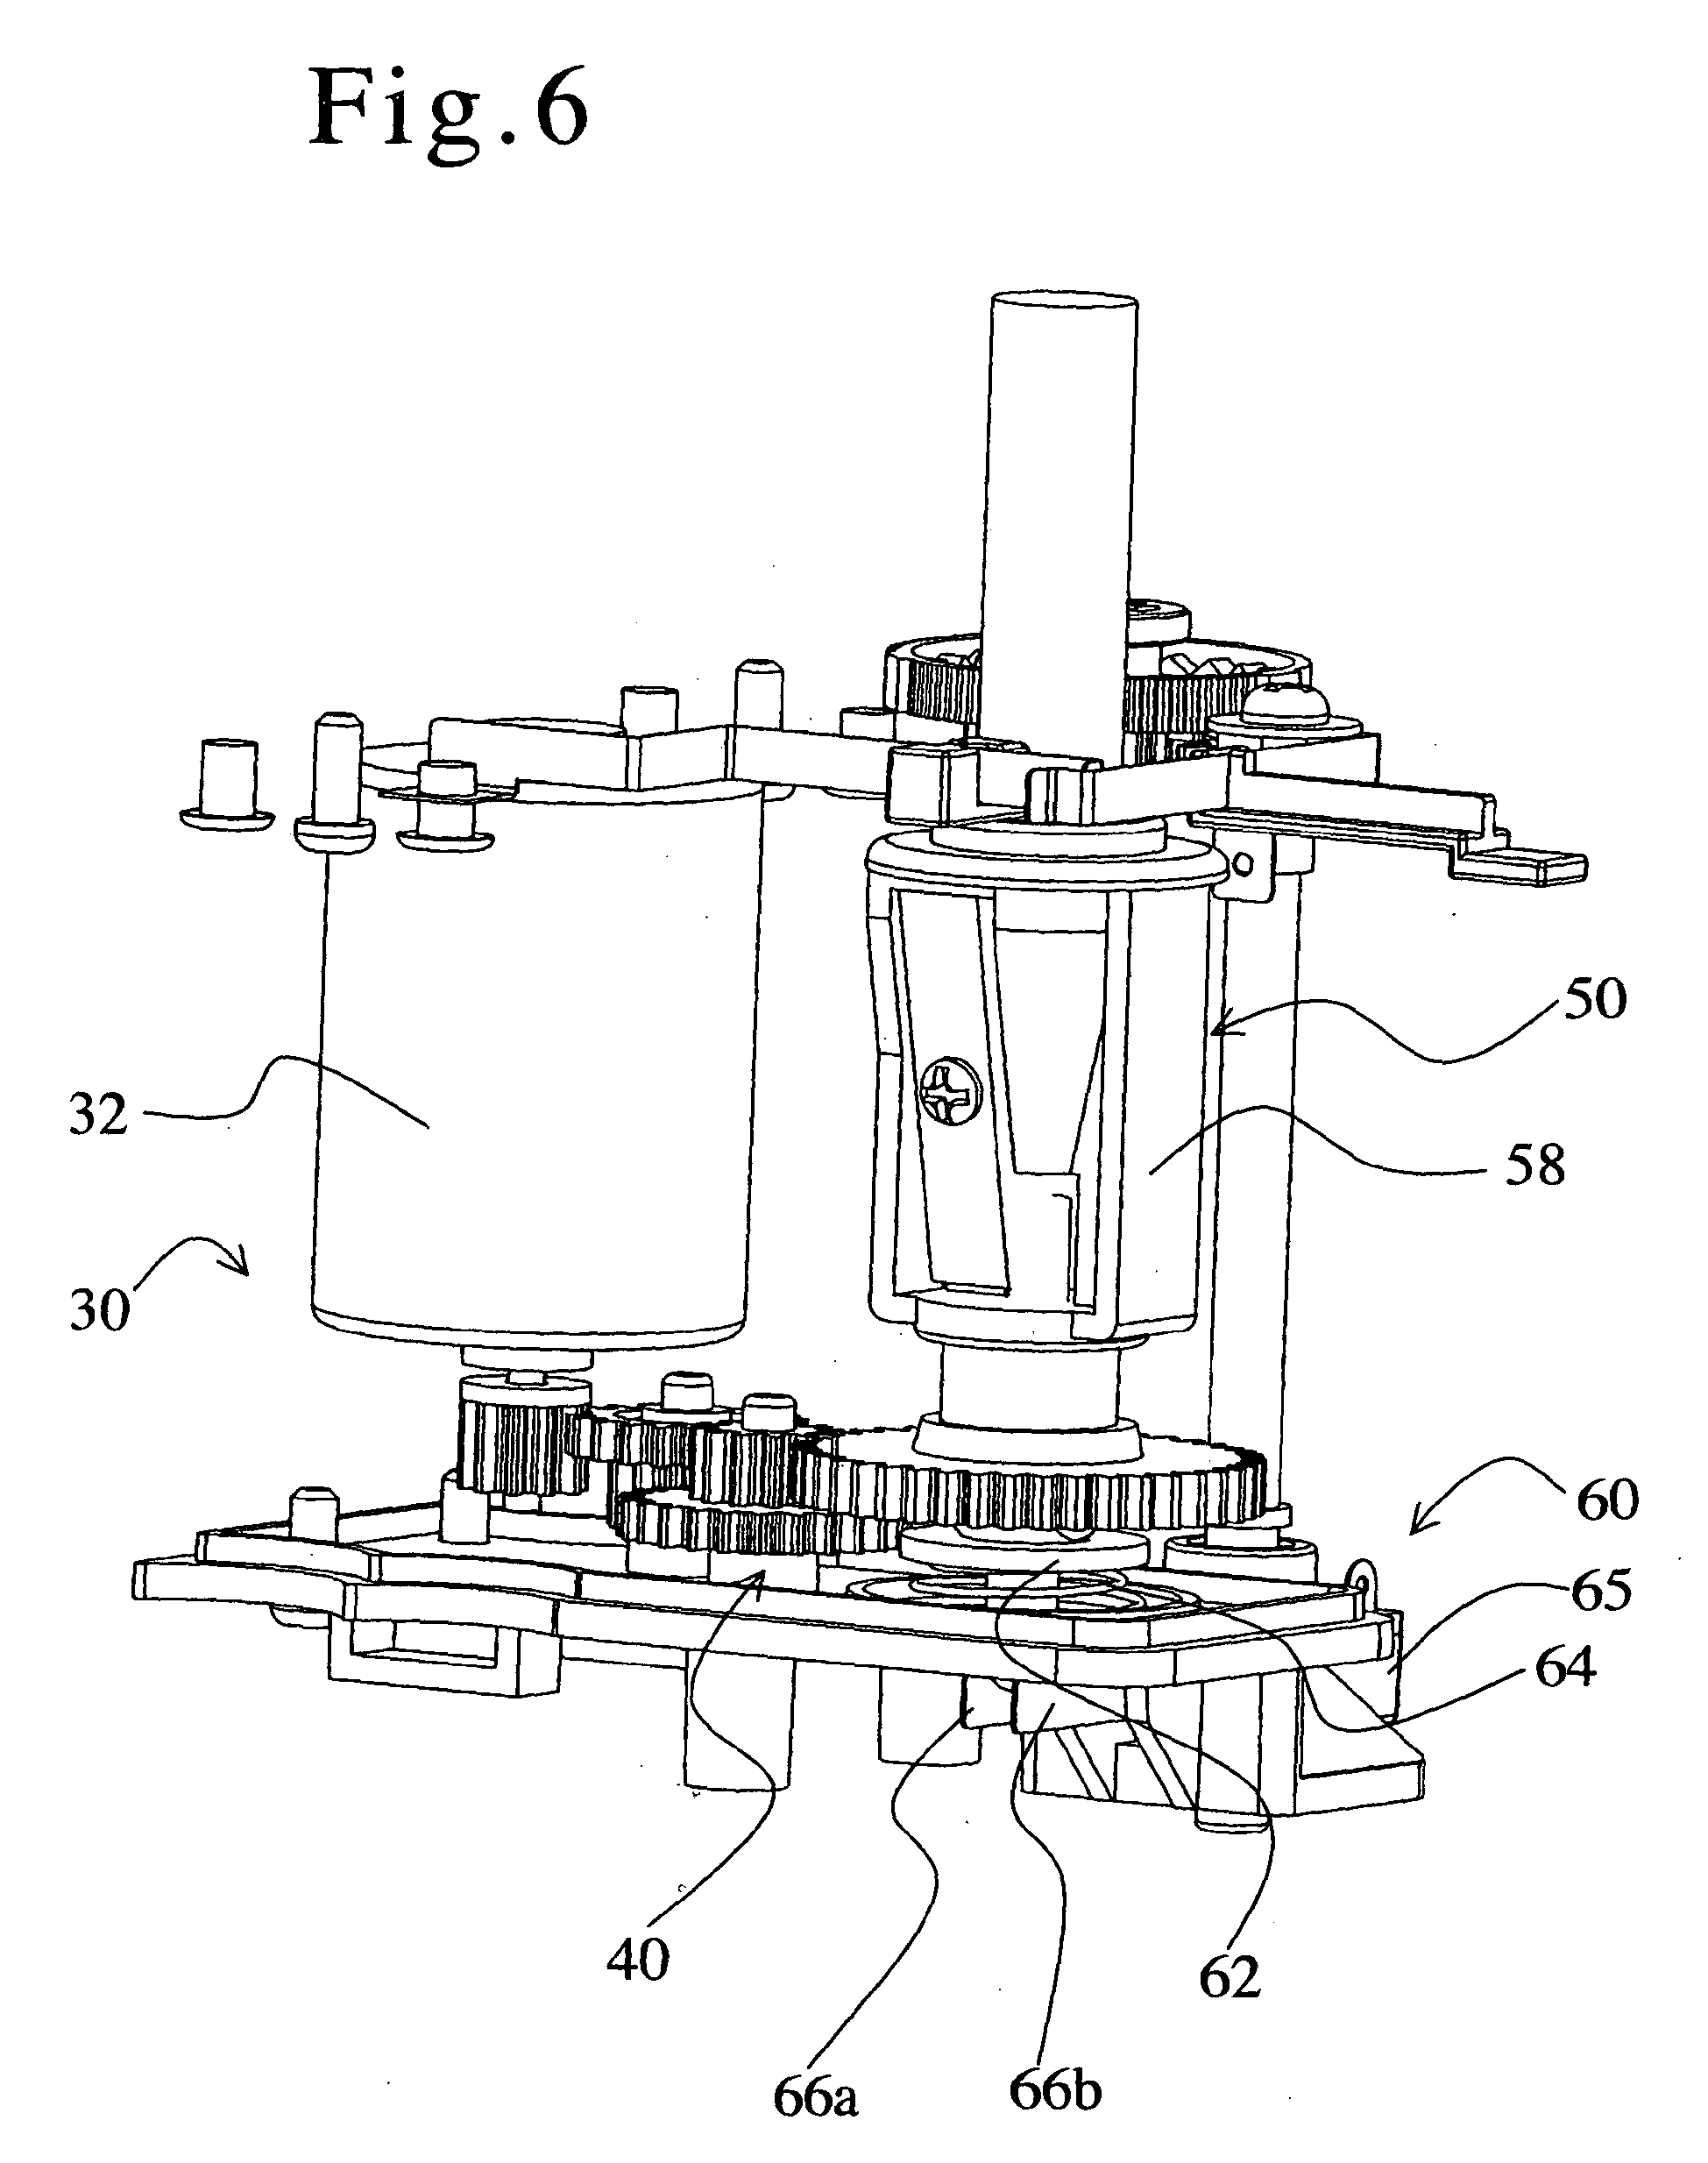 Patent Ep1650049a2 - Pencil Sharpener